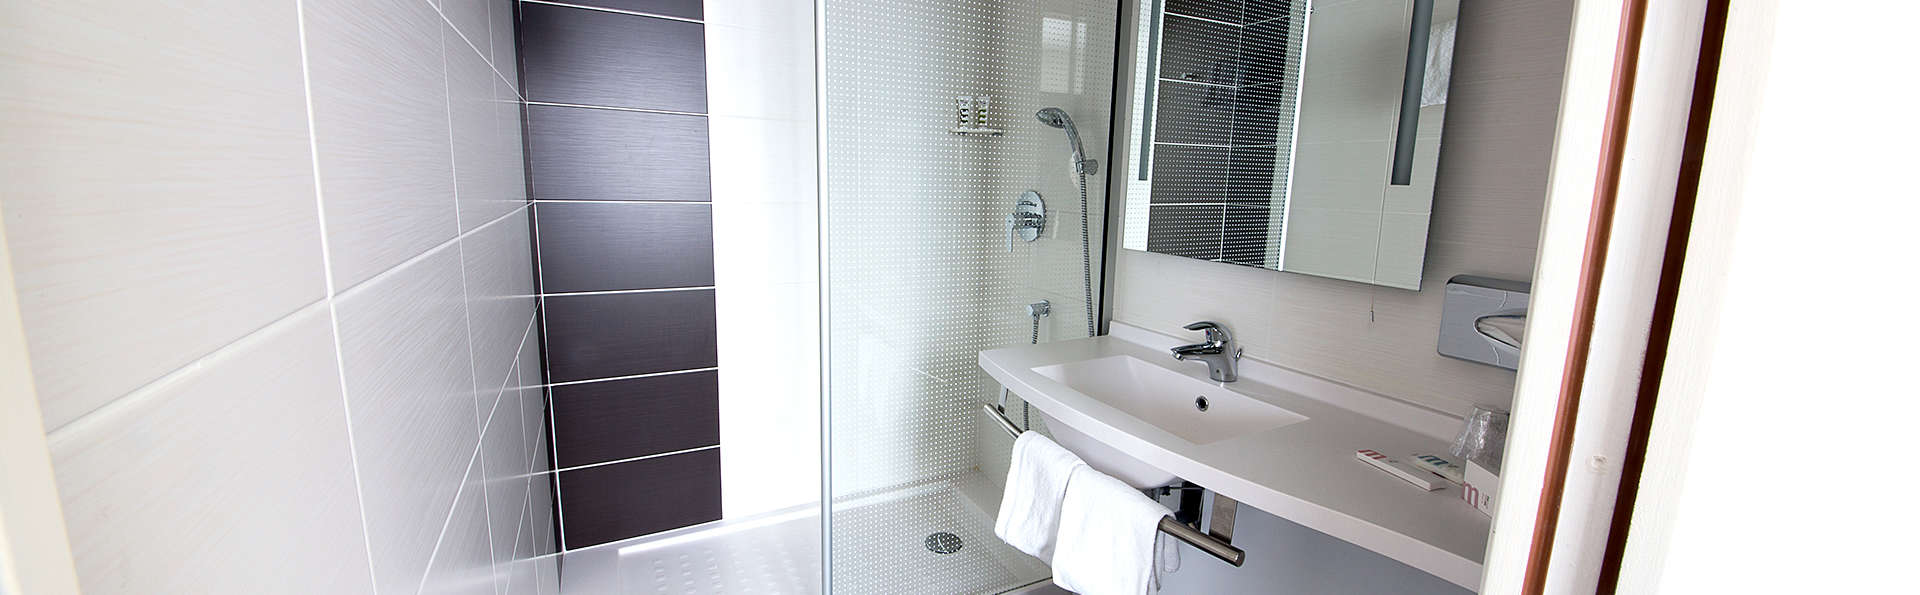 Mercure Lille - Roubaix Grand Hôtel  - Edit_Bathroom.jpg